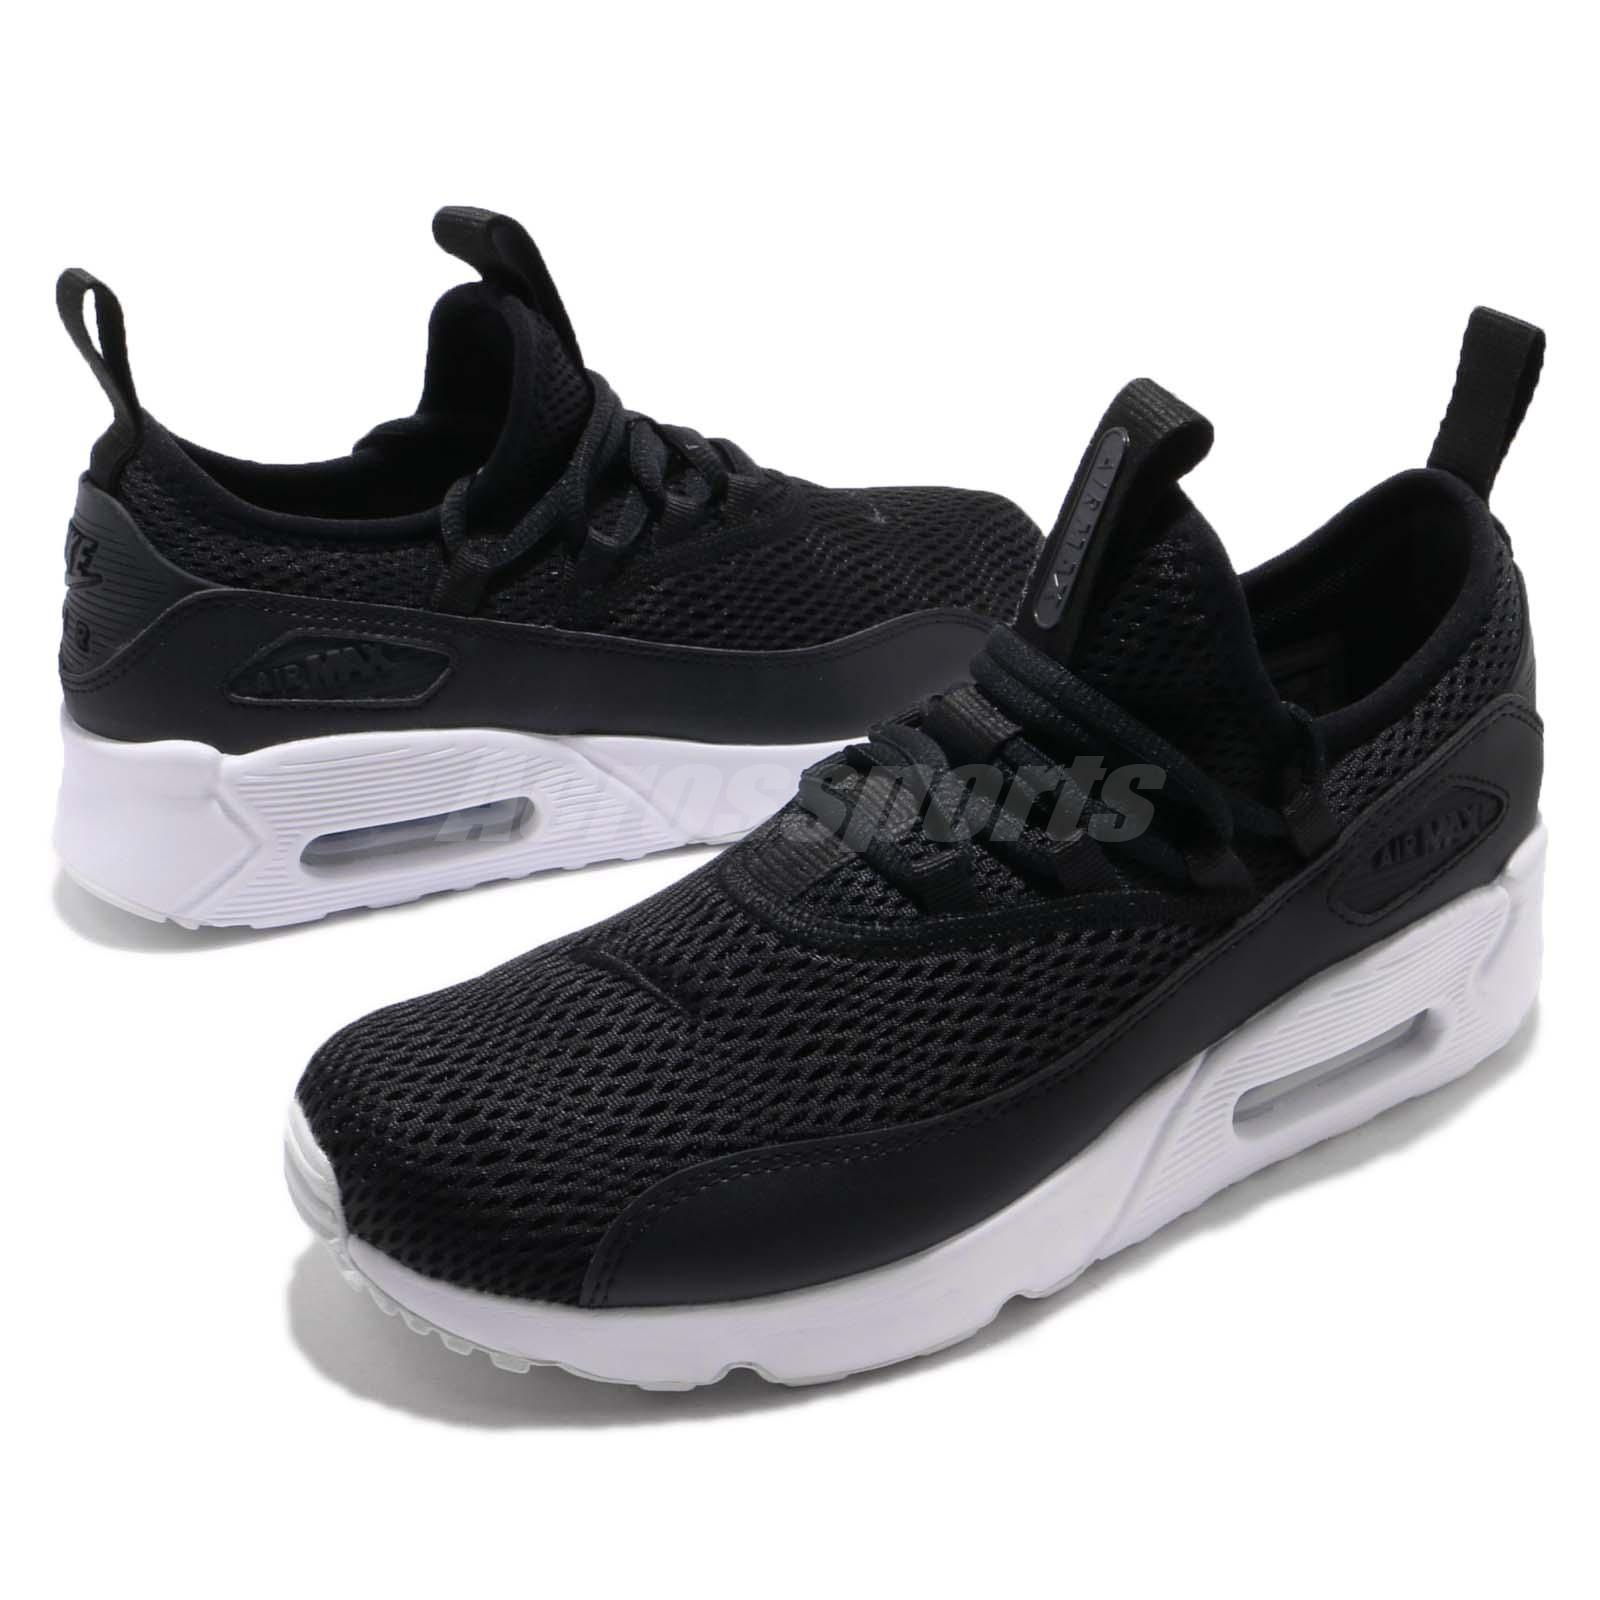 73a71b2395cf Details about Nike Air Max 90 EZ GS Black White Kids Youth Women Running  Shoes AH5211-005